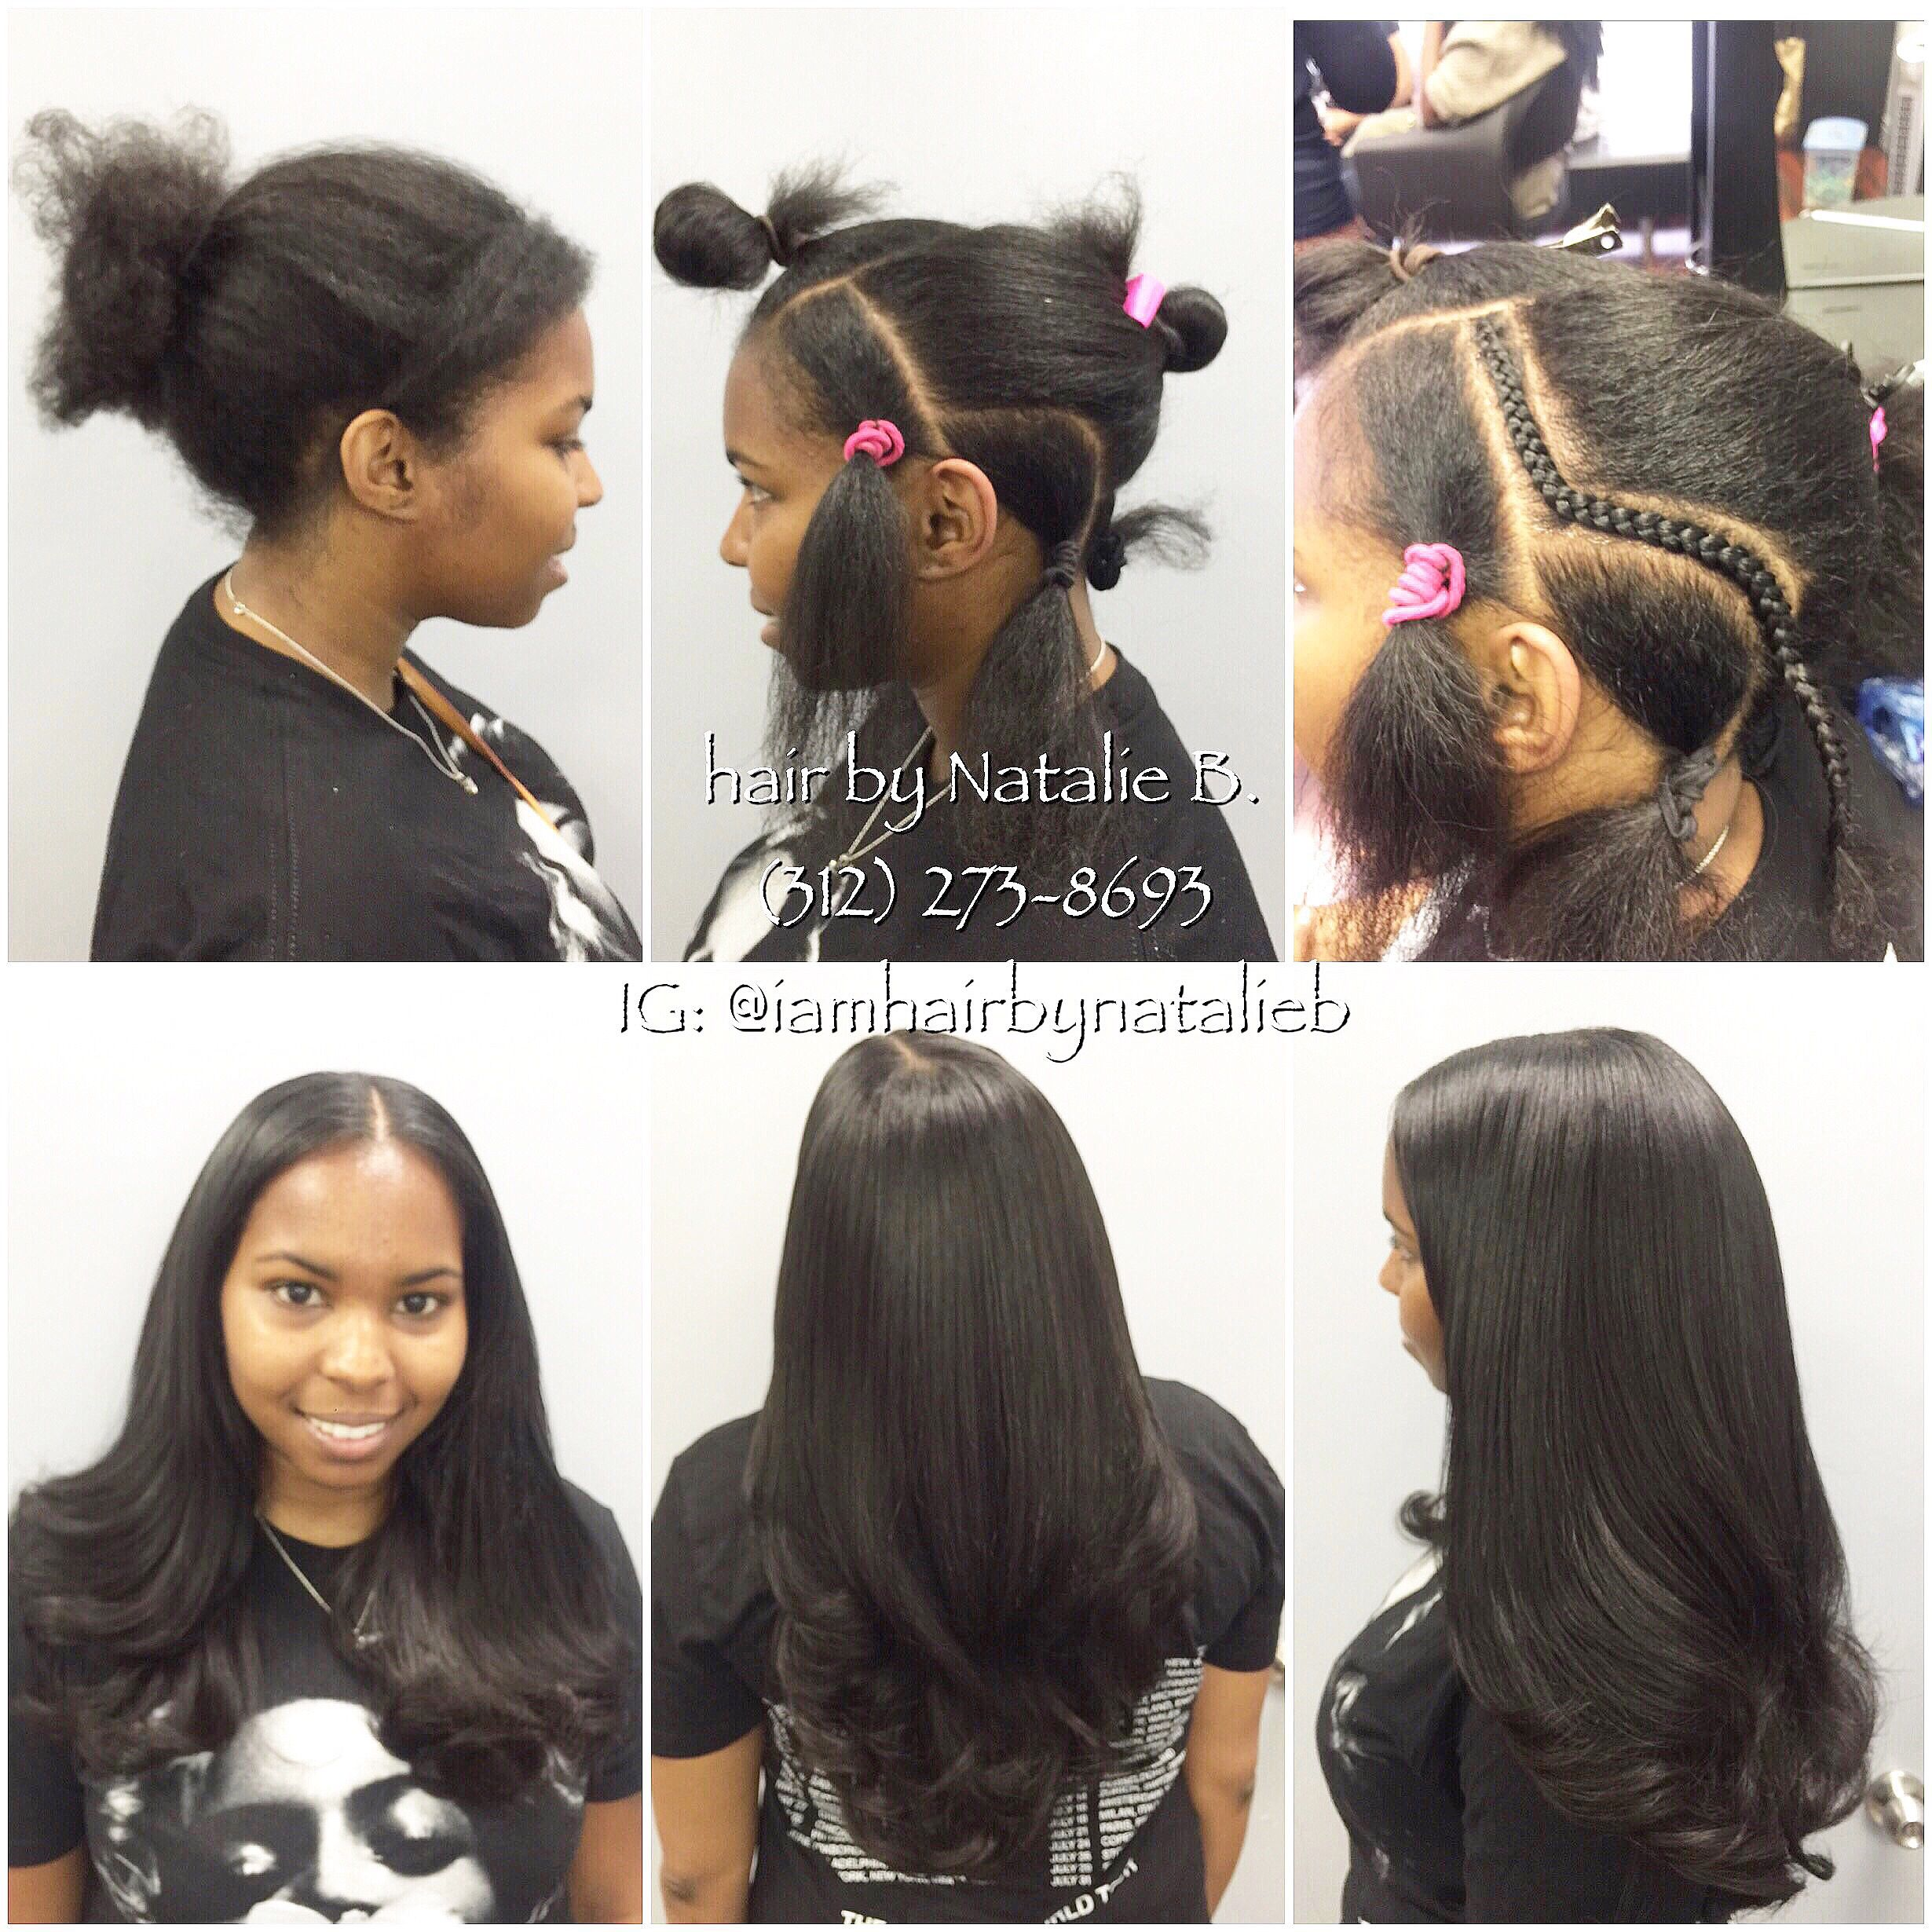 Flattest Installs No Humps No Lumps No Bumps Traditional Sew In Hair Weave Lasts Up To 2 1 2 Months Hair Styles Weave Hairstyles Sew In Hairstyles